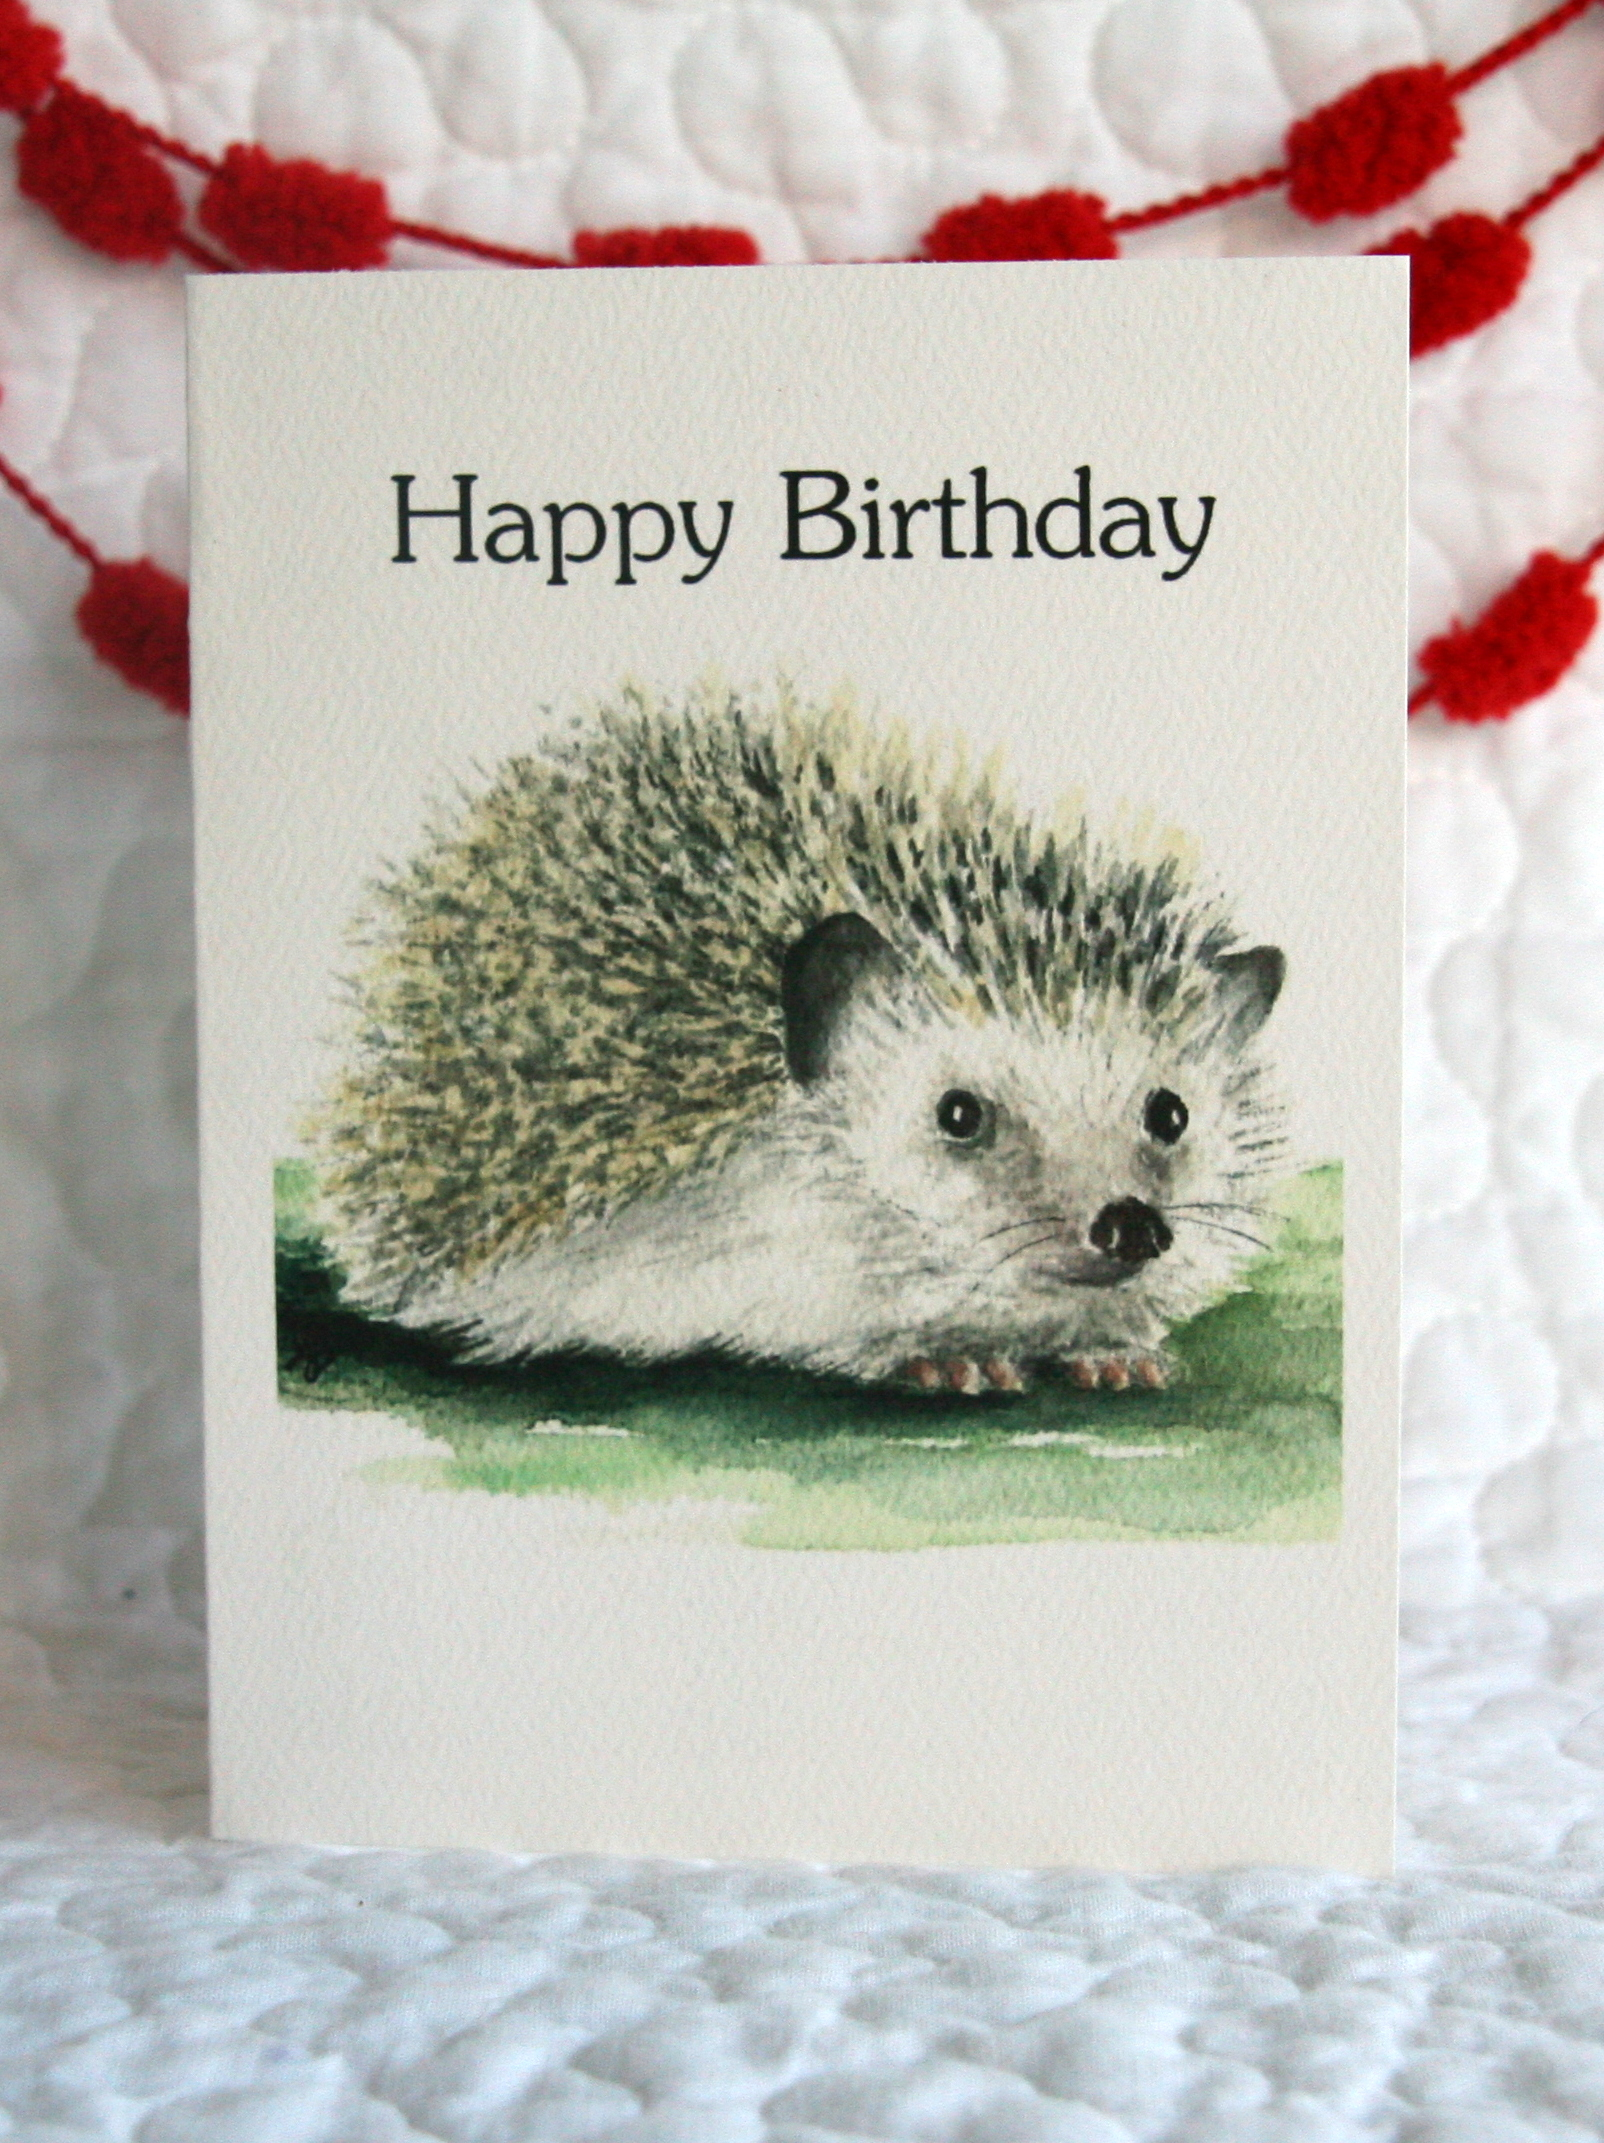 HEDGEHOG - HAPPY BIRTHDAY    INSIDE: ...to loveable you!